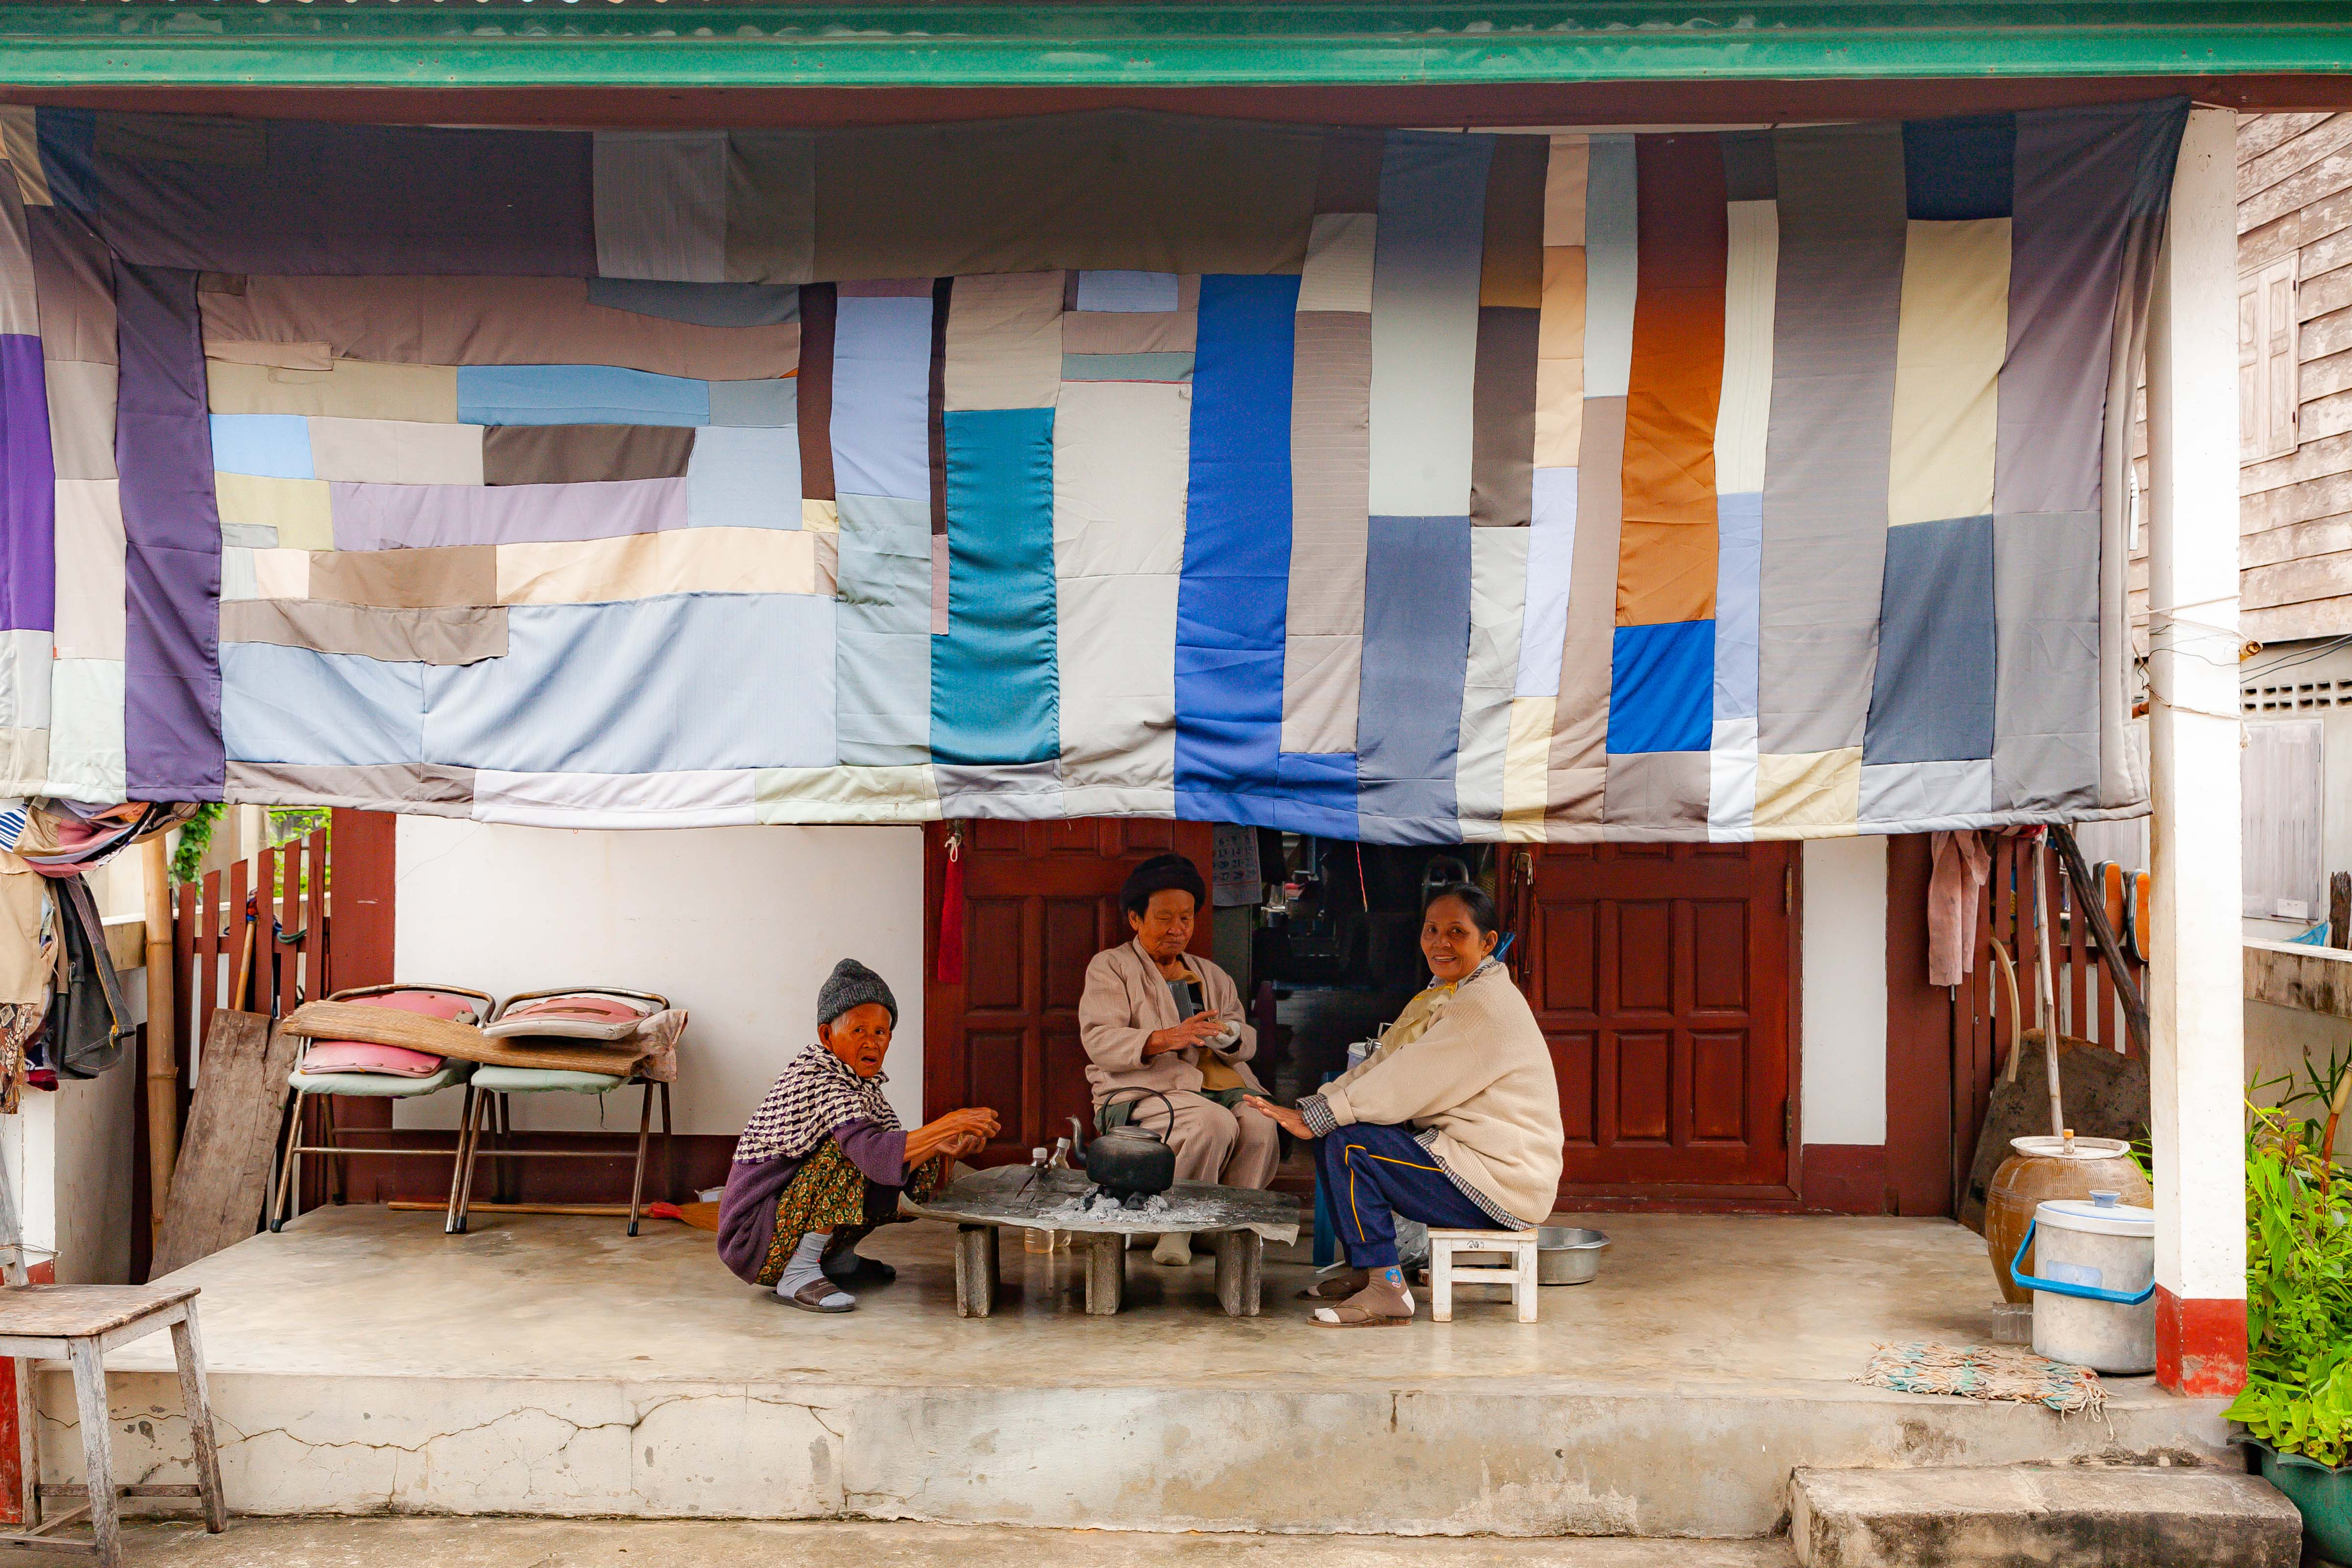 Thailand, Loei Prov, Colorful Awning, 2008, IMG 6437